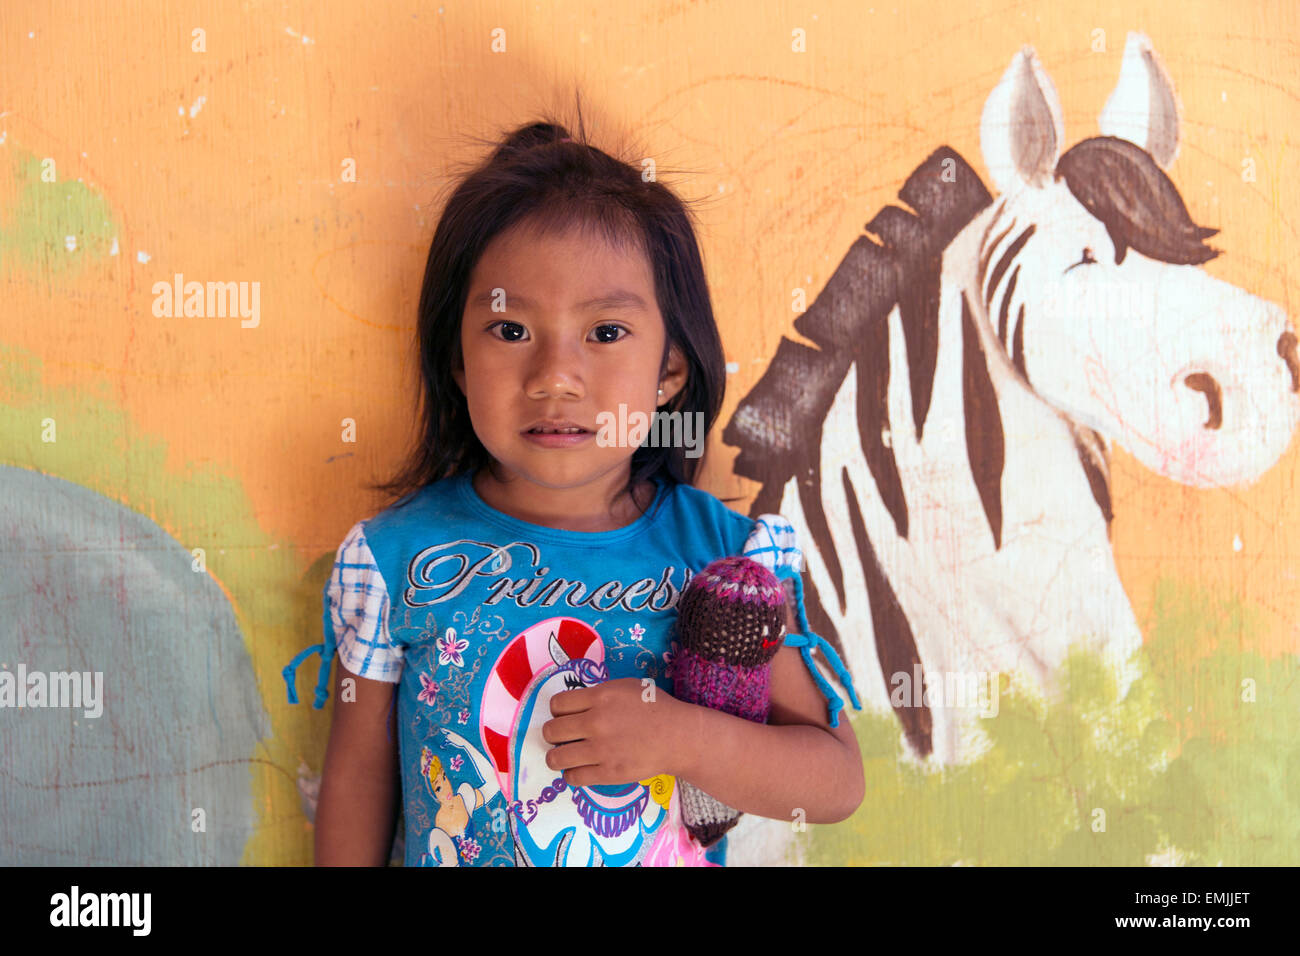 Guatemala, portrait of a child in a nutrition center recovering from malnutrition - Stock Image